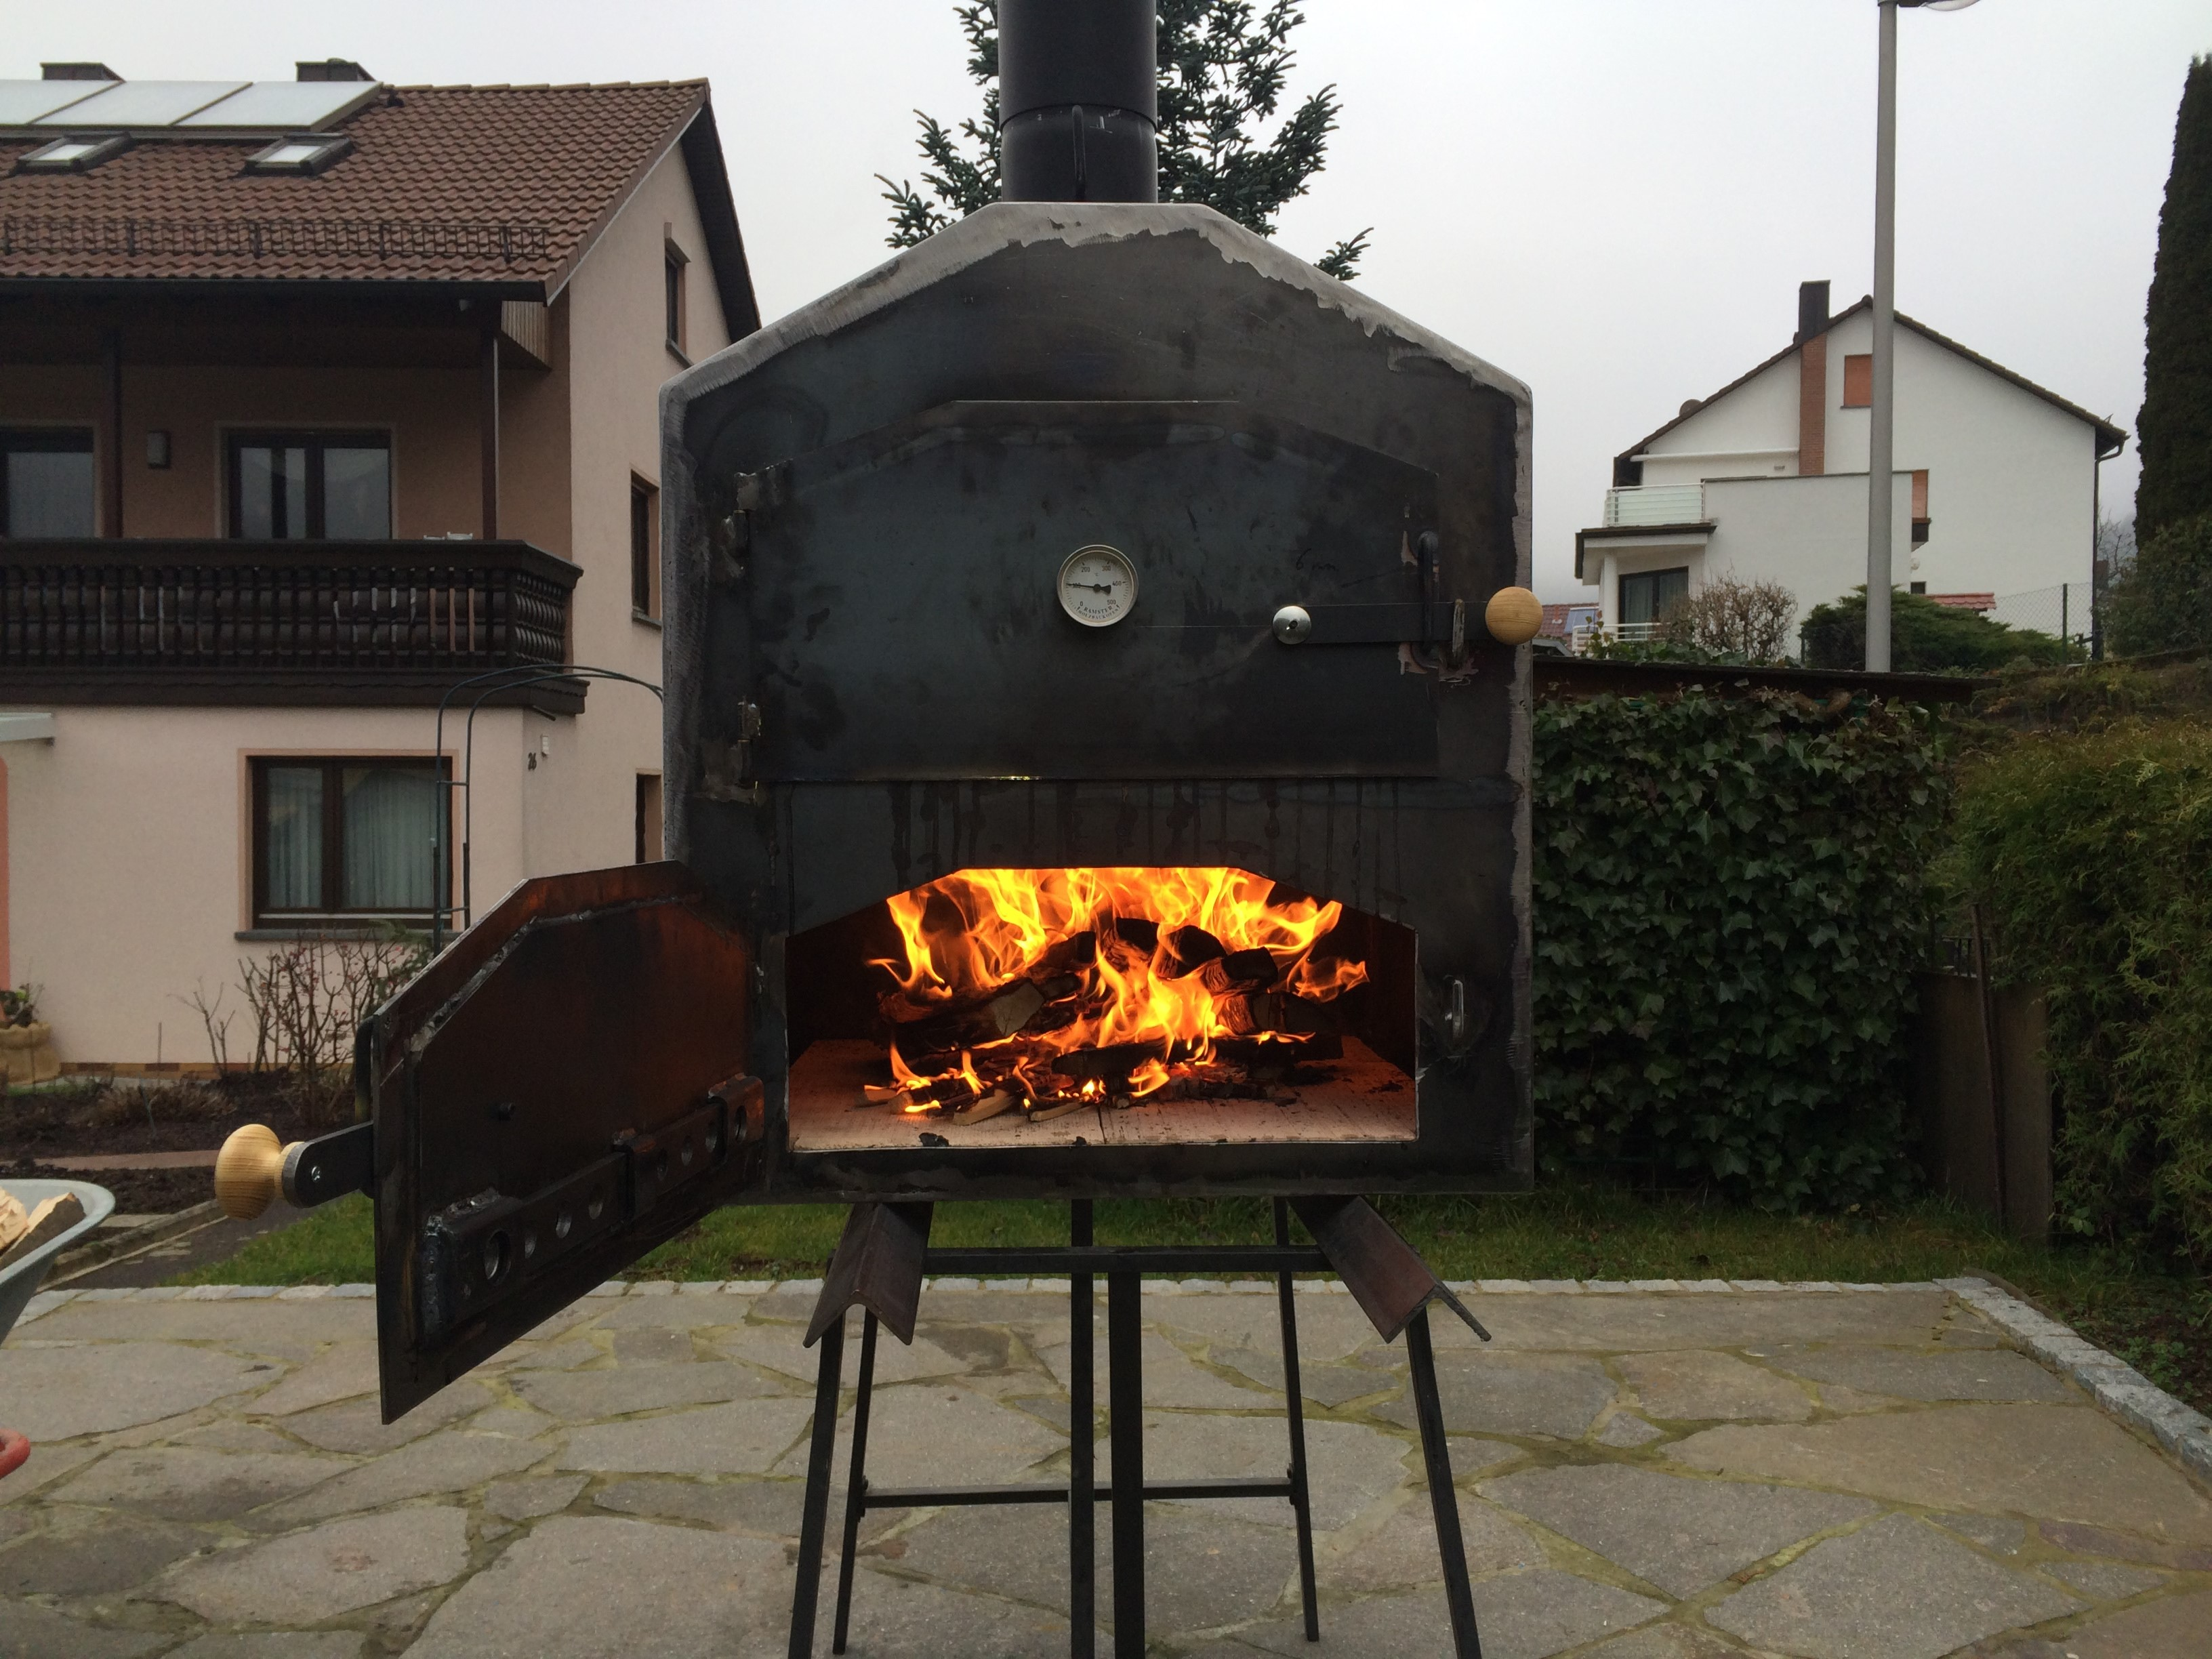 Holzbackofen outdoor kuche for Outdoor kuche grill